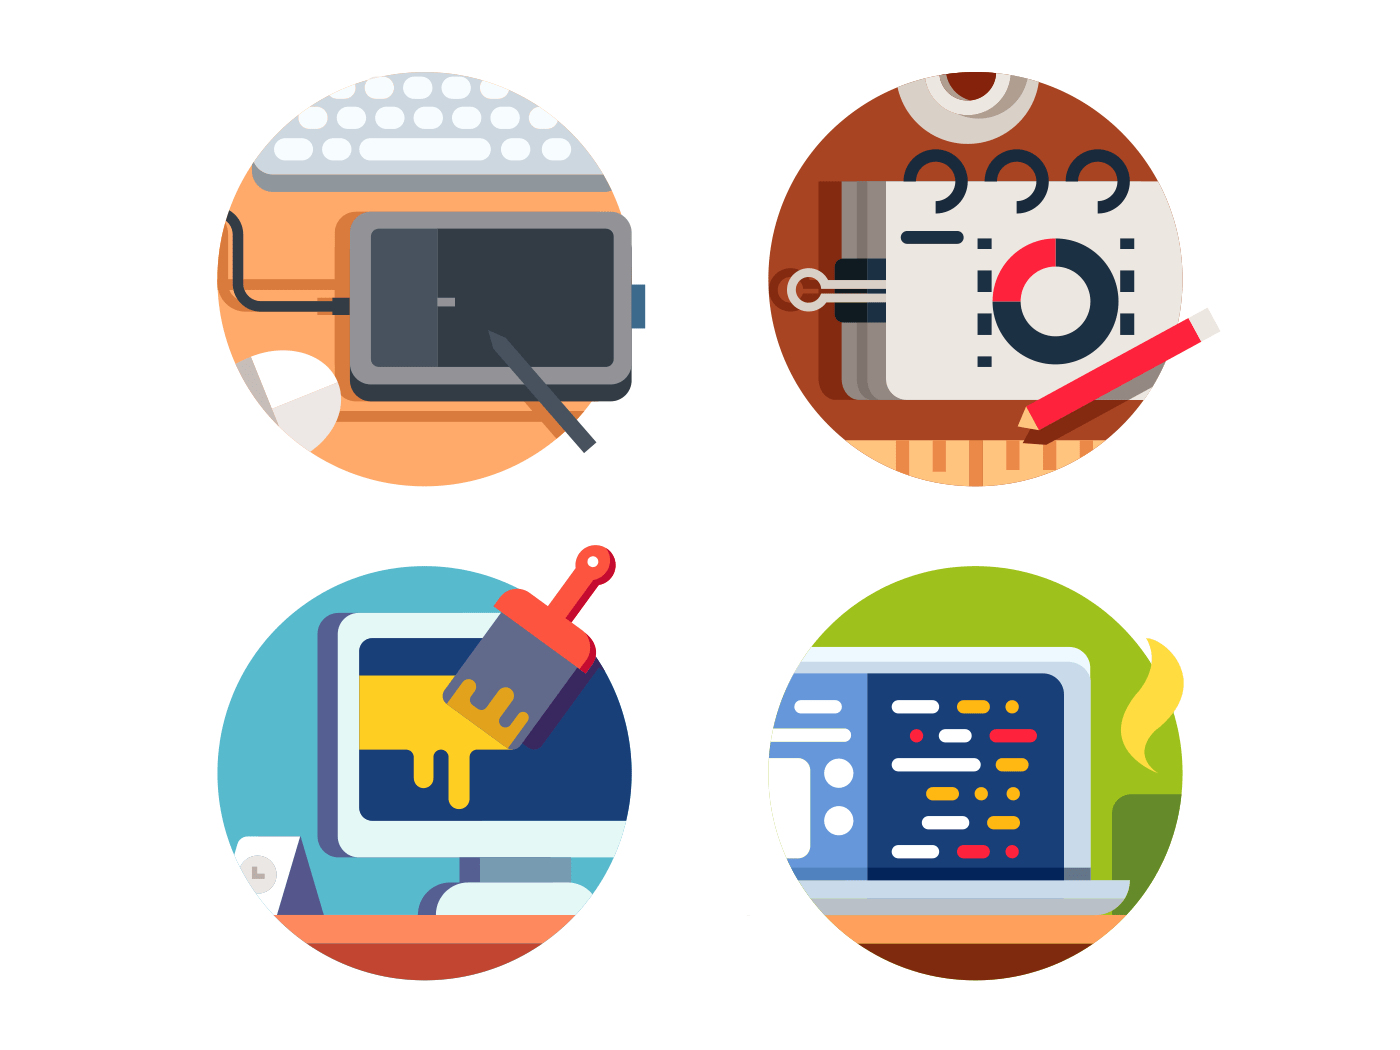 Computer software design icons